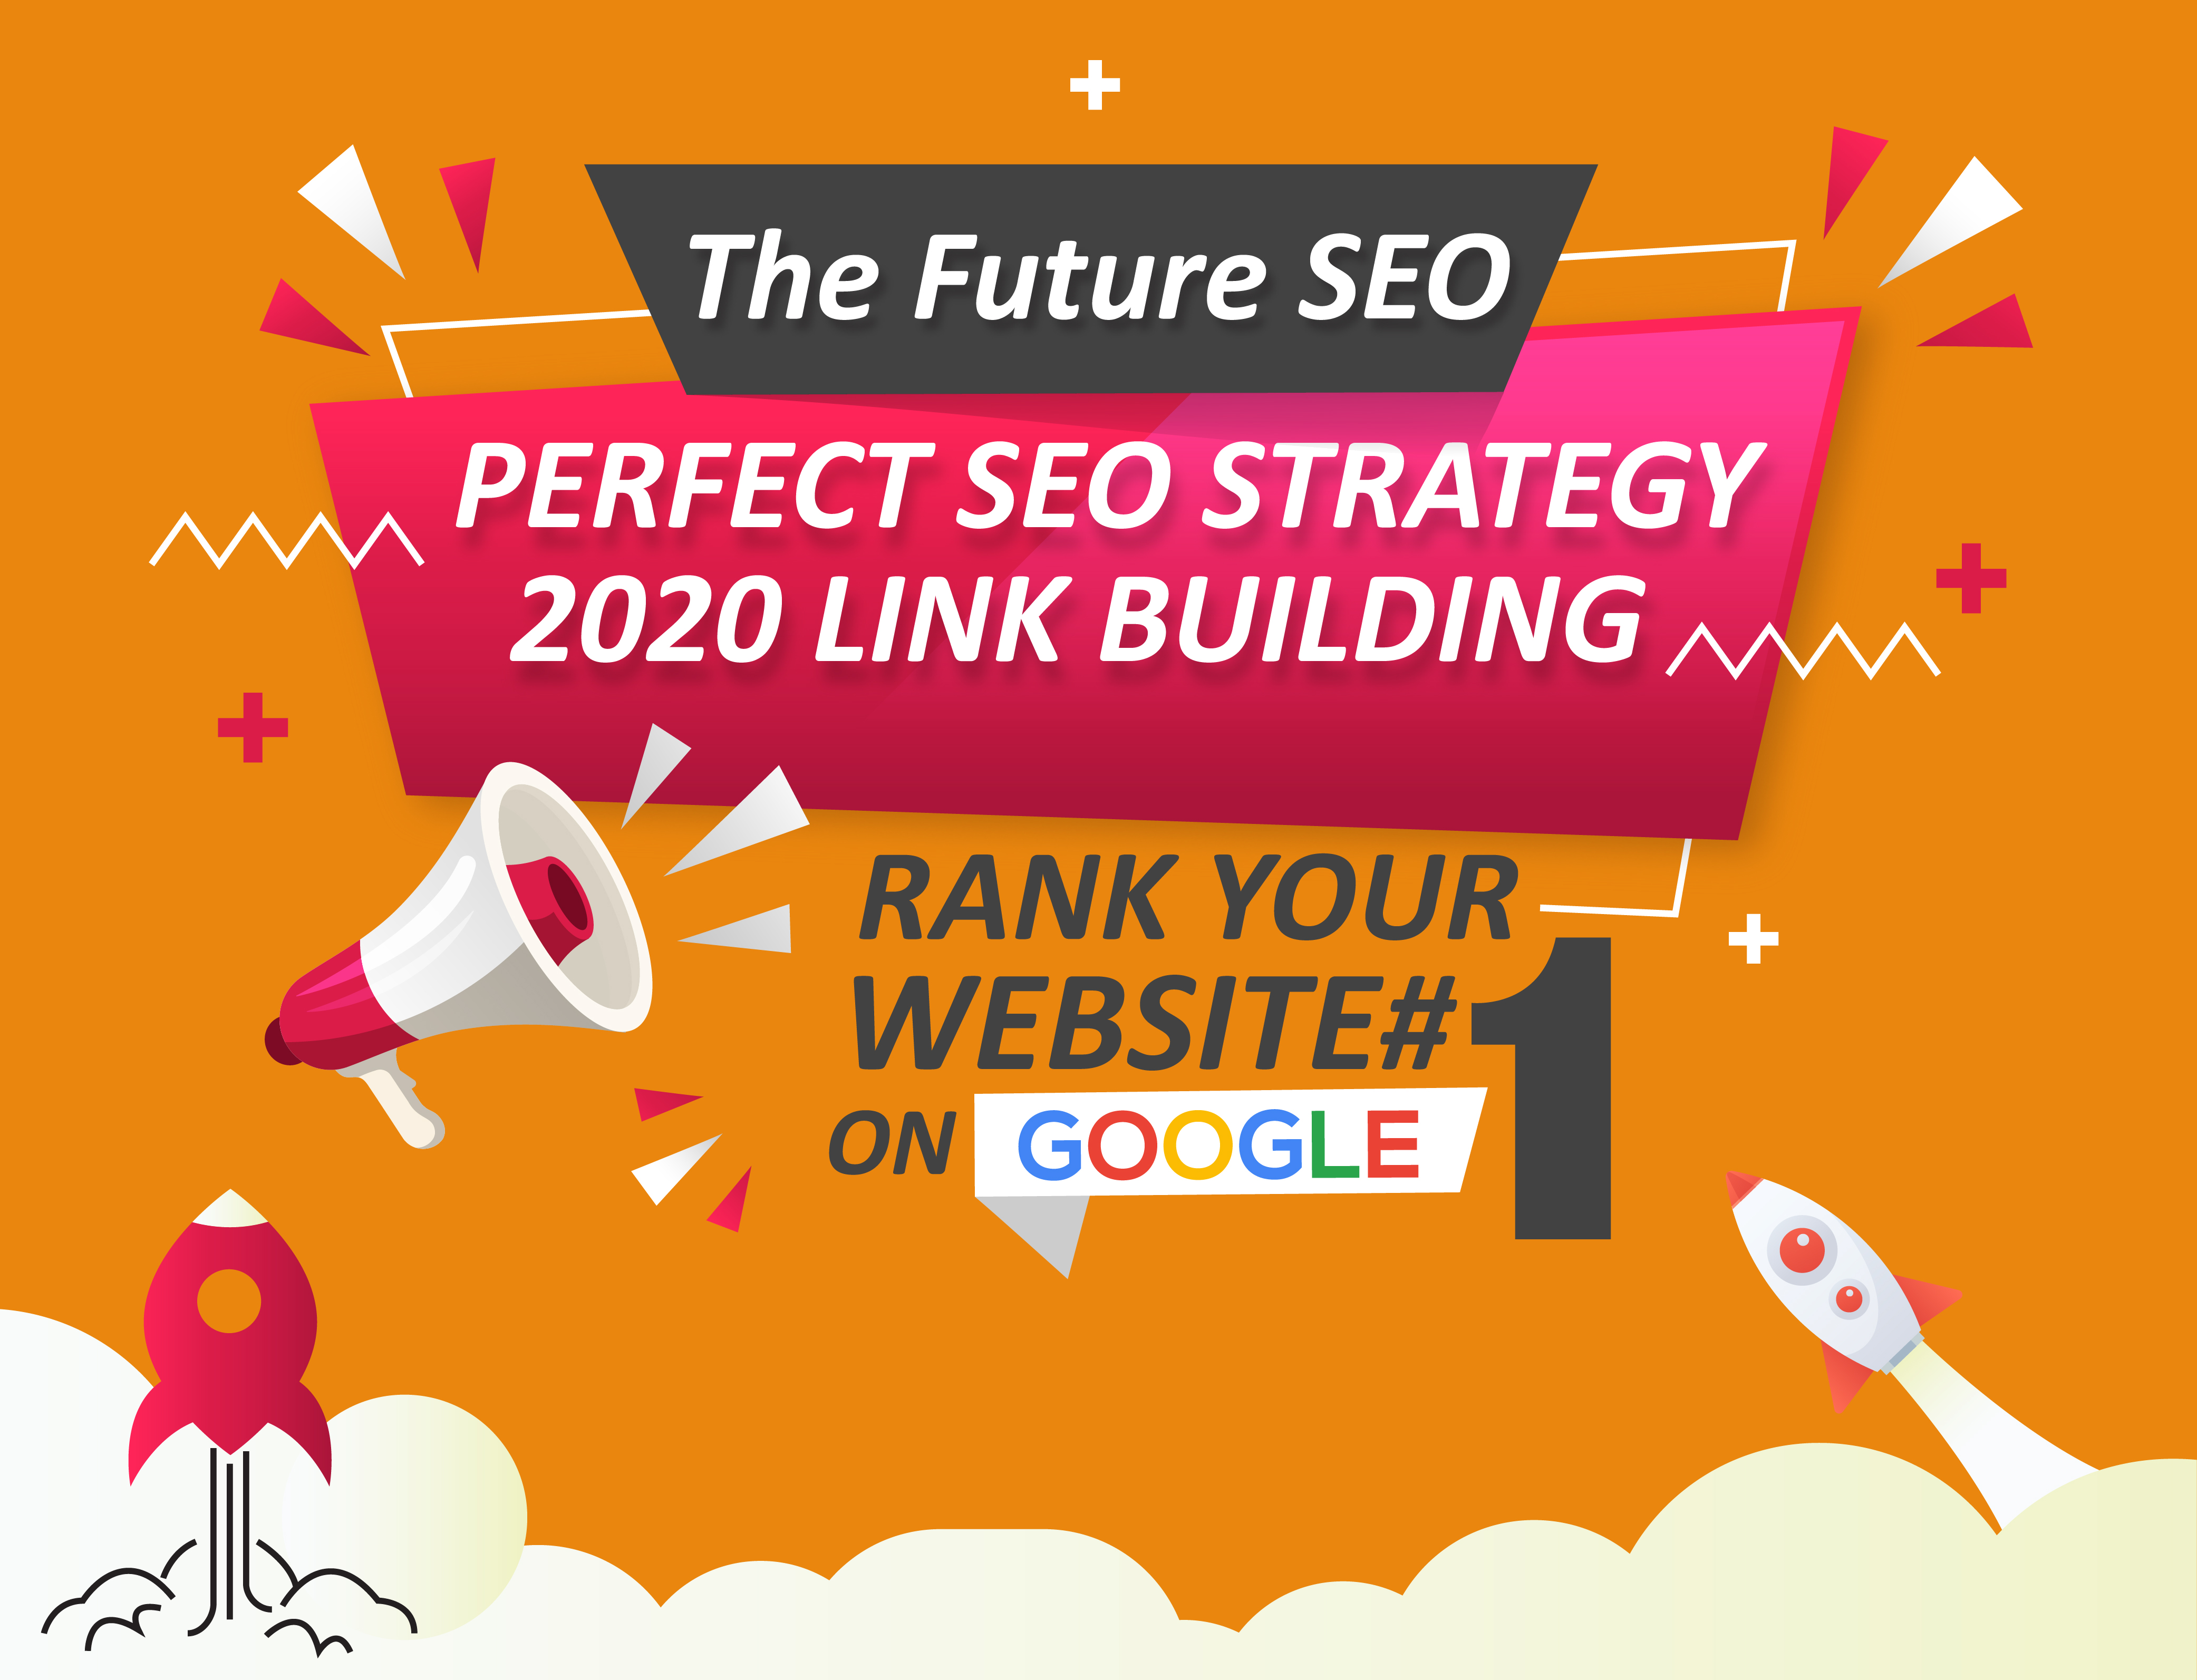 i will give you 85 SEO backlinks white hat manual link building service for google top ranking